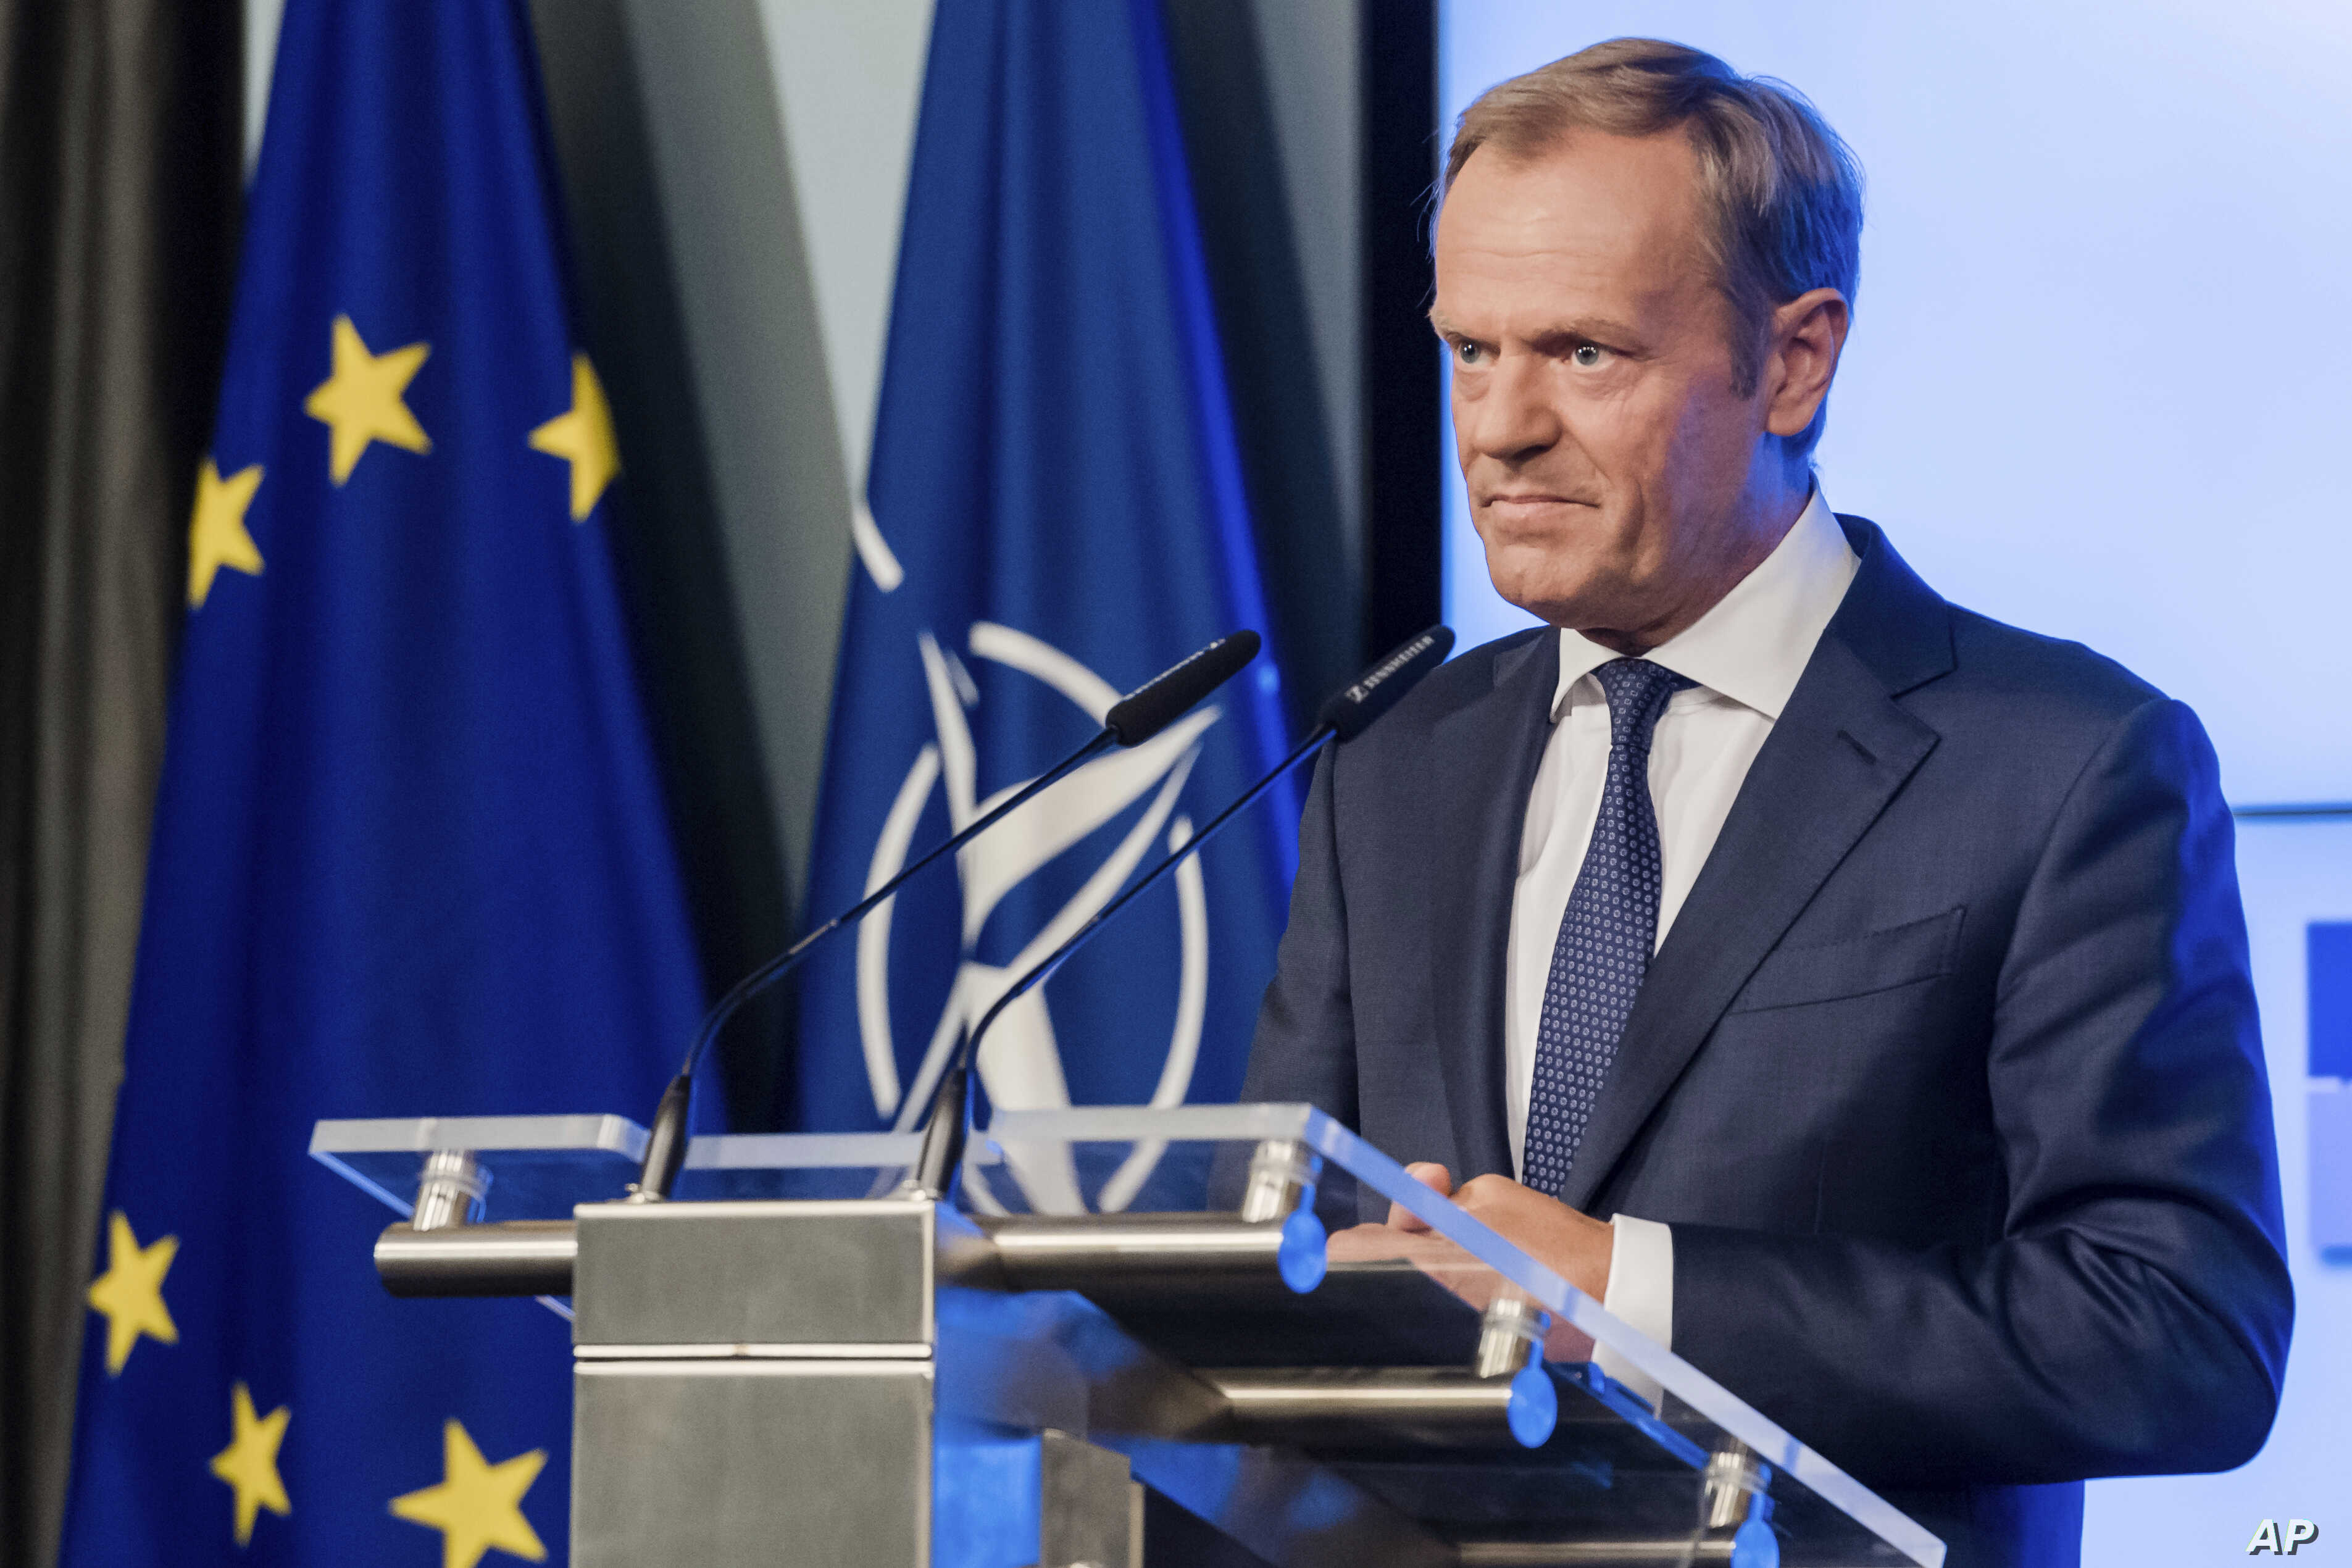 European Council President Donald Tusk addresses the media in Brussels, Belgium, July 10, 2018.